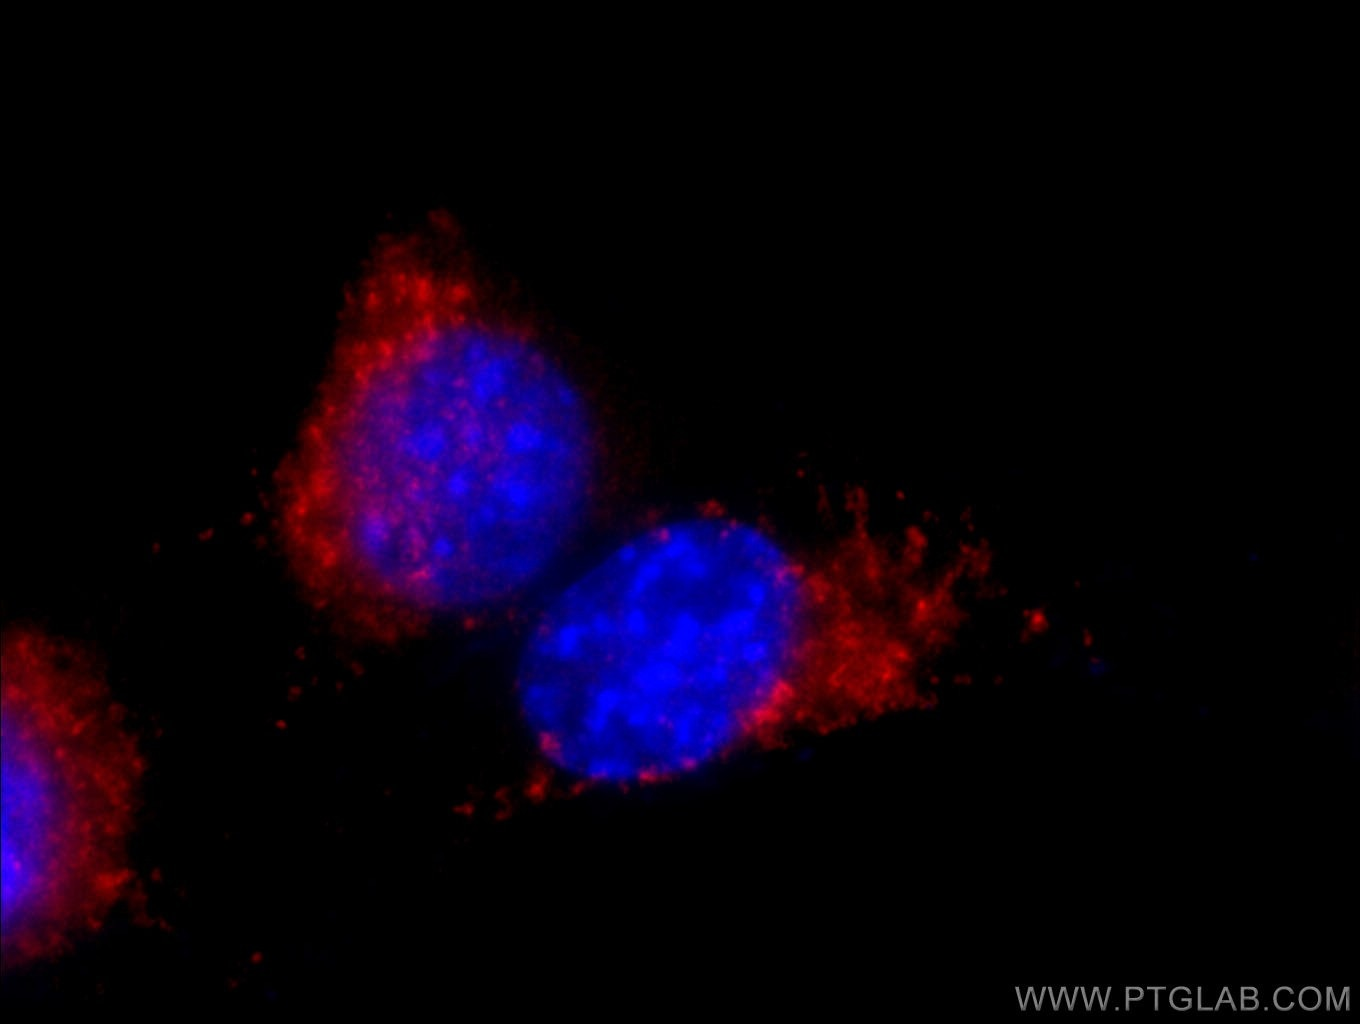 IF Staining of NIH/3T3 using 65052-1-Ig